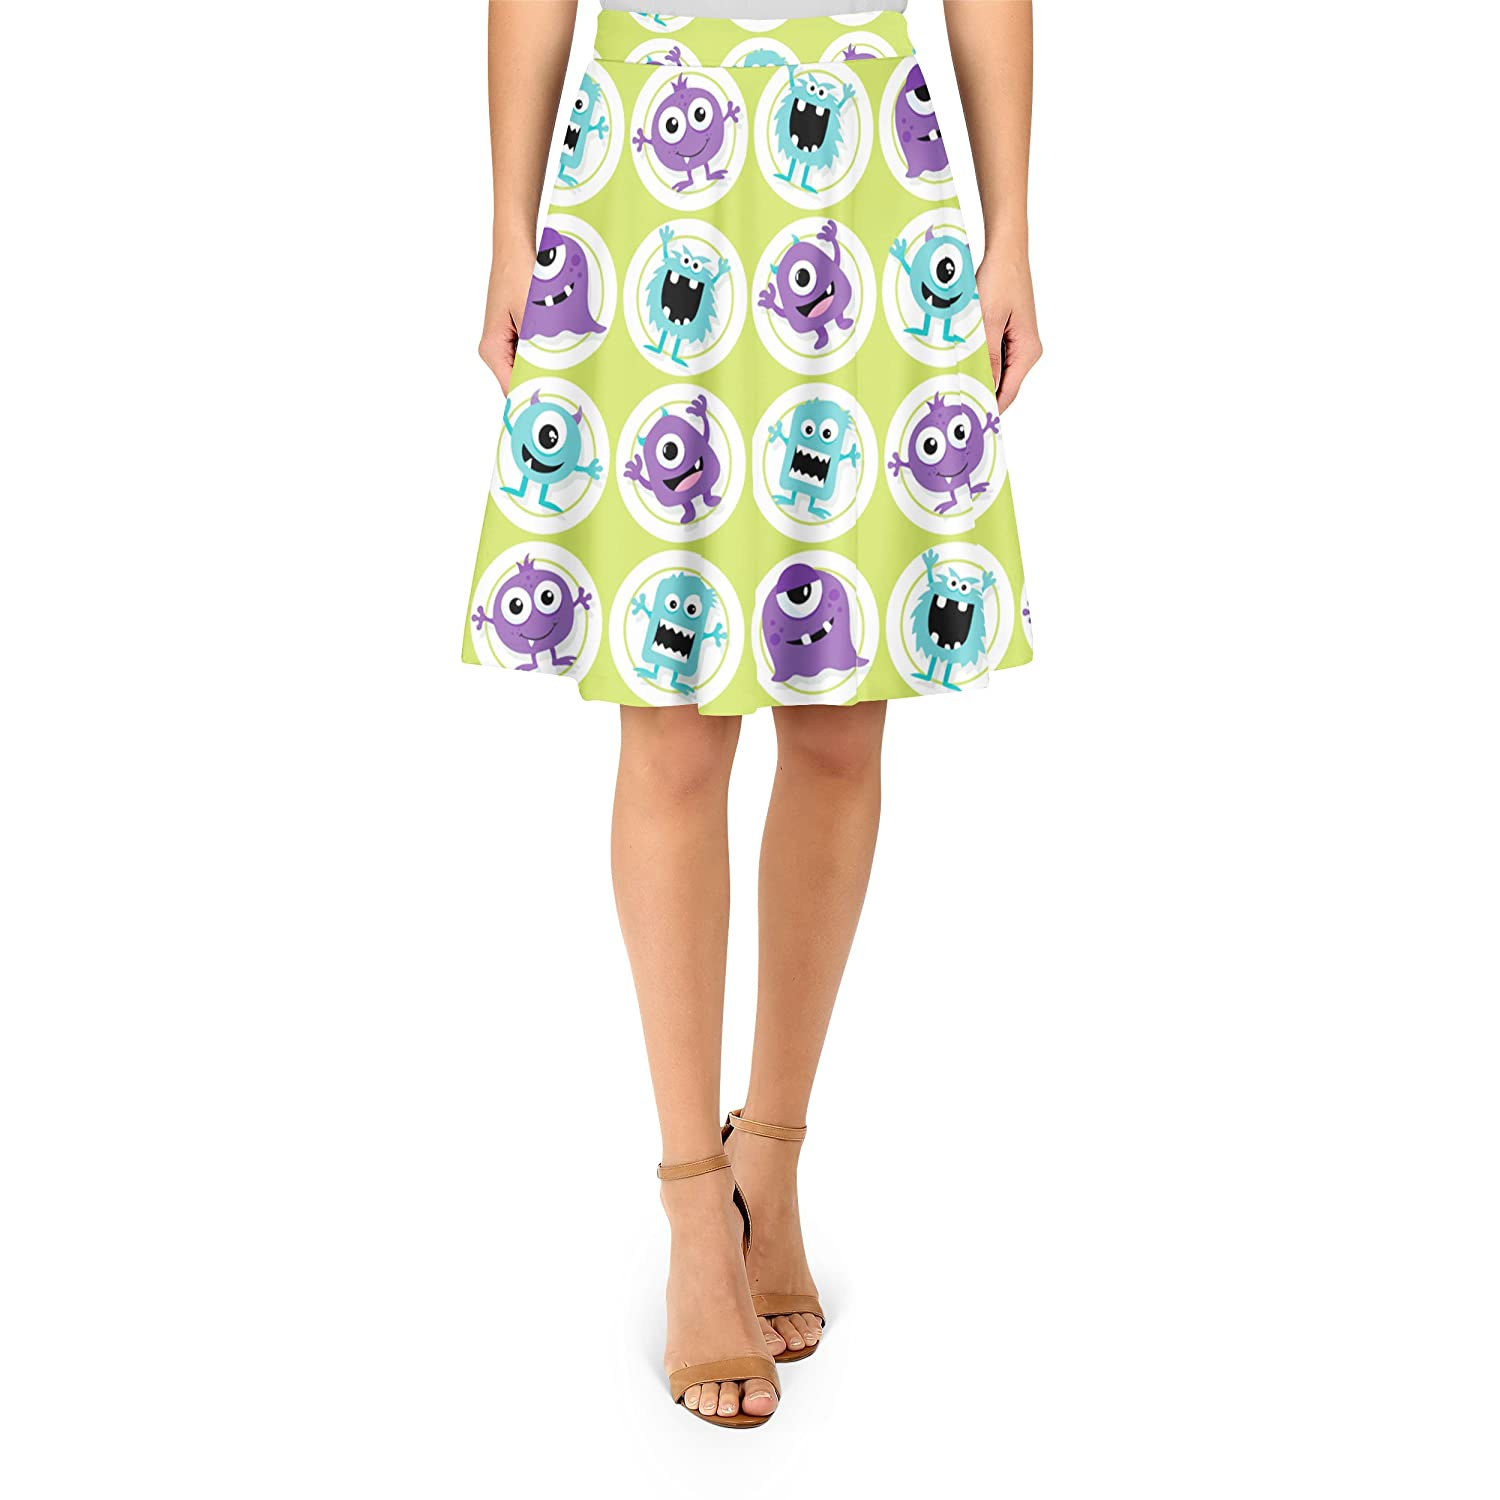 Funny Monsters A-Line Skirt